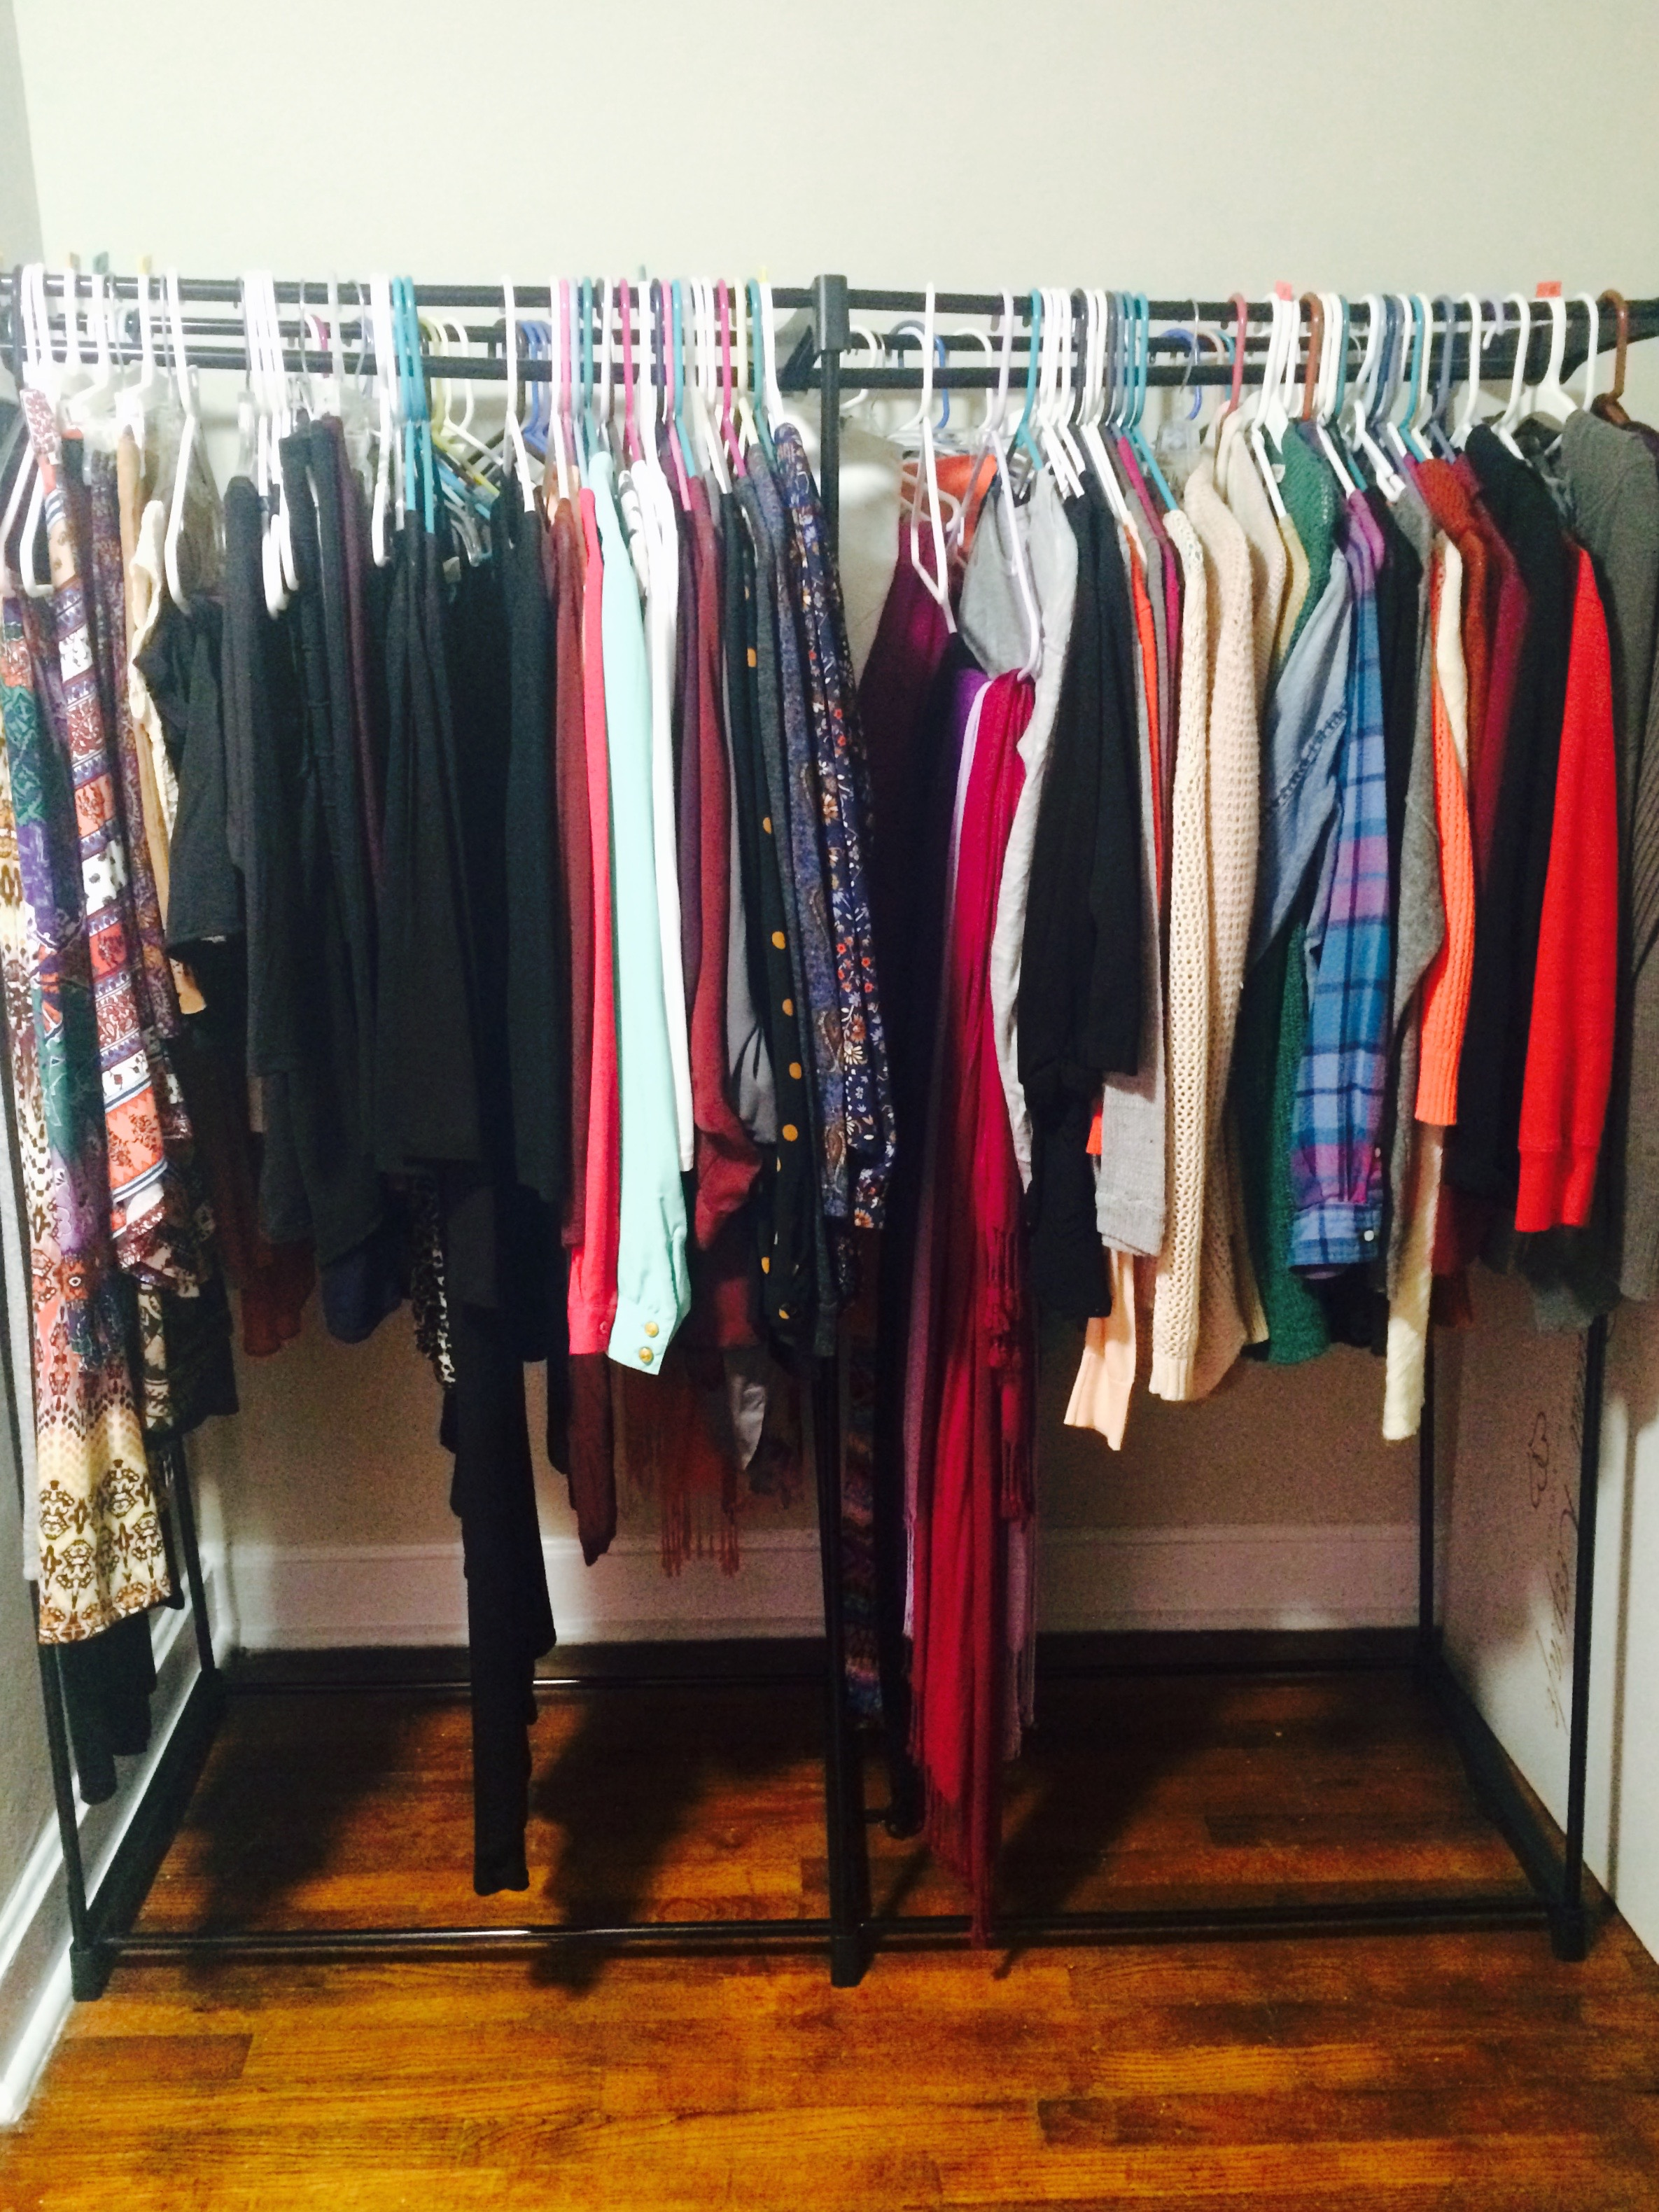 How to Keep Your Clothes Organized When You Have Little or No Closet Space